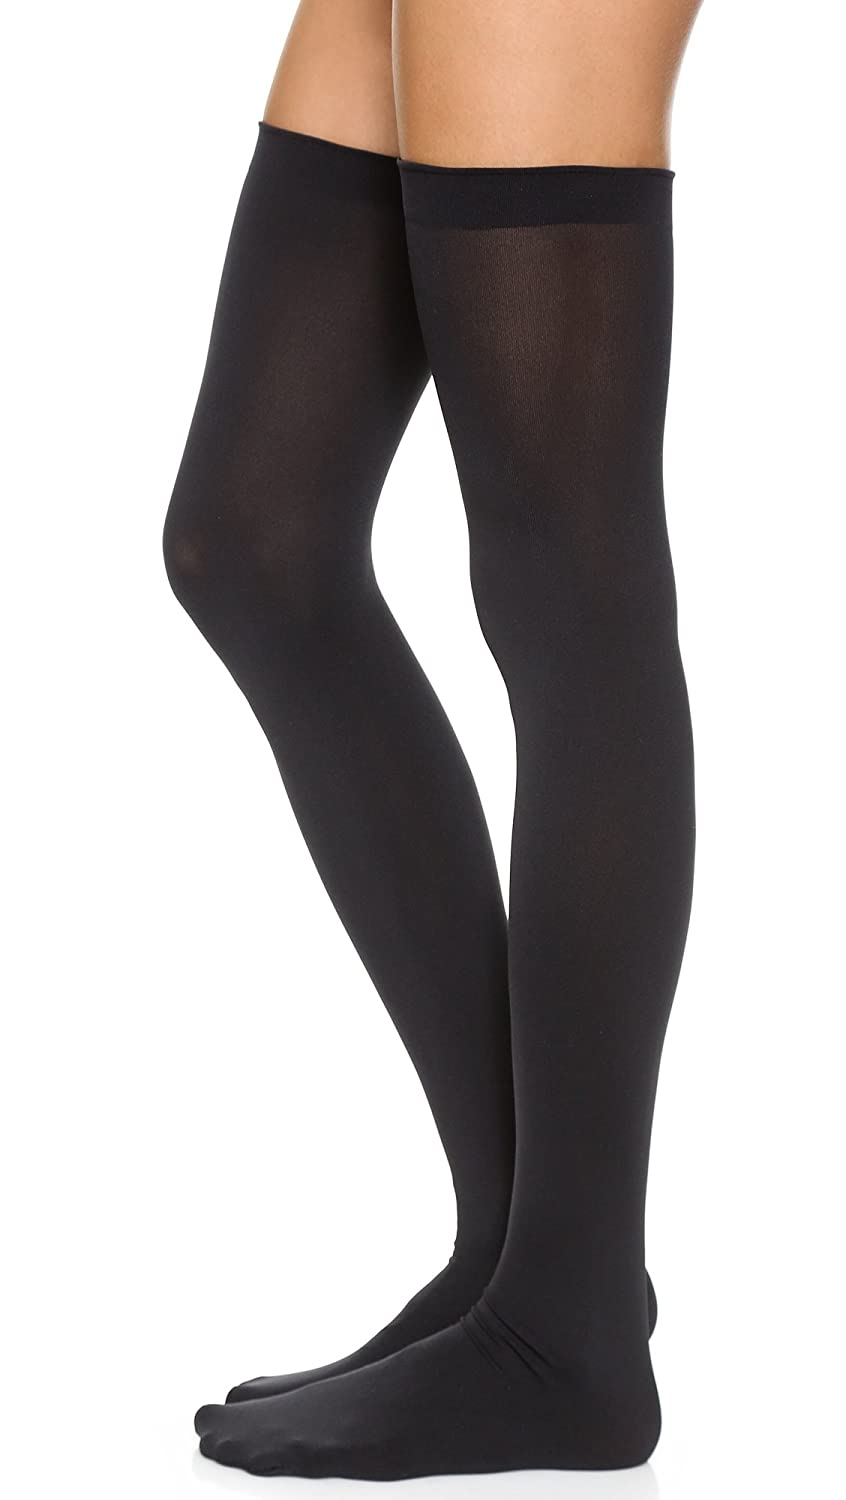 1920s Stockings, Tights, Nylons History Wolford Womens Fatal 80 Seamless Stay Up Tights $57.00 AT vintagedancer.com